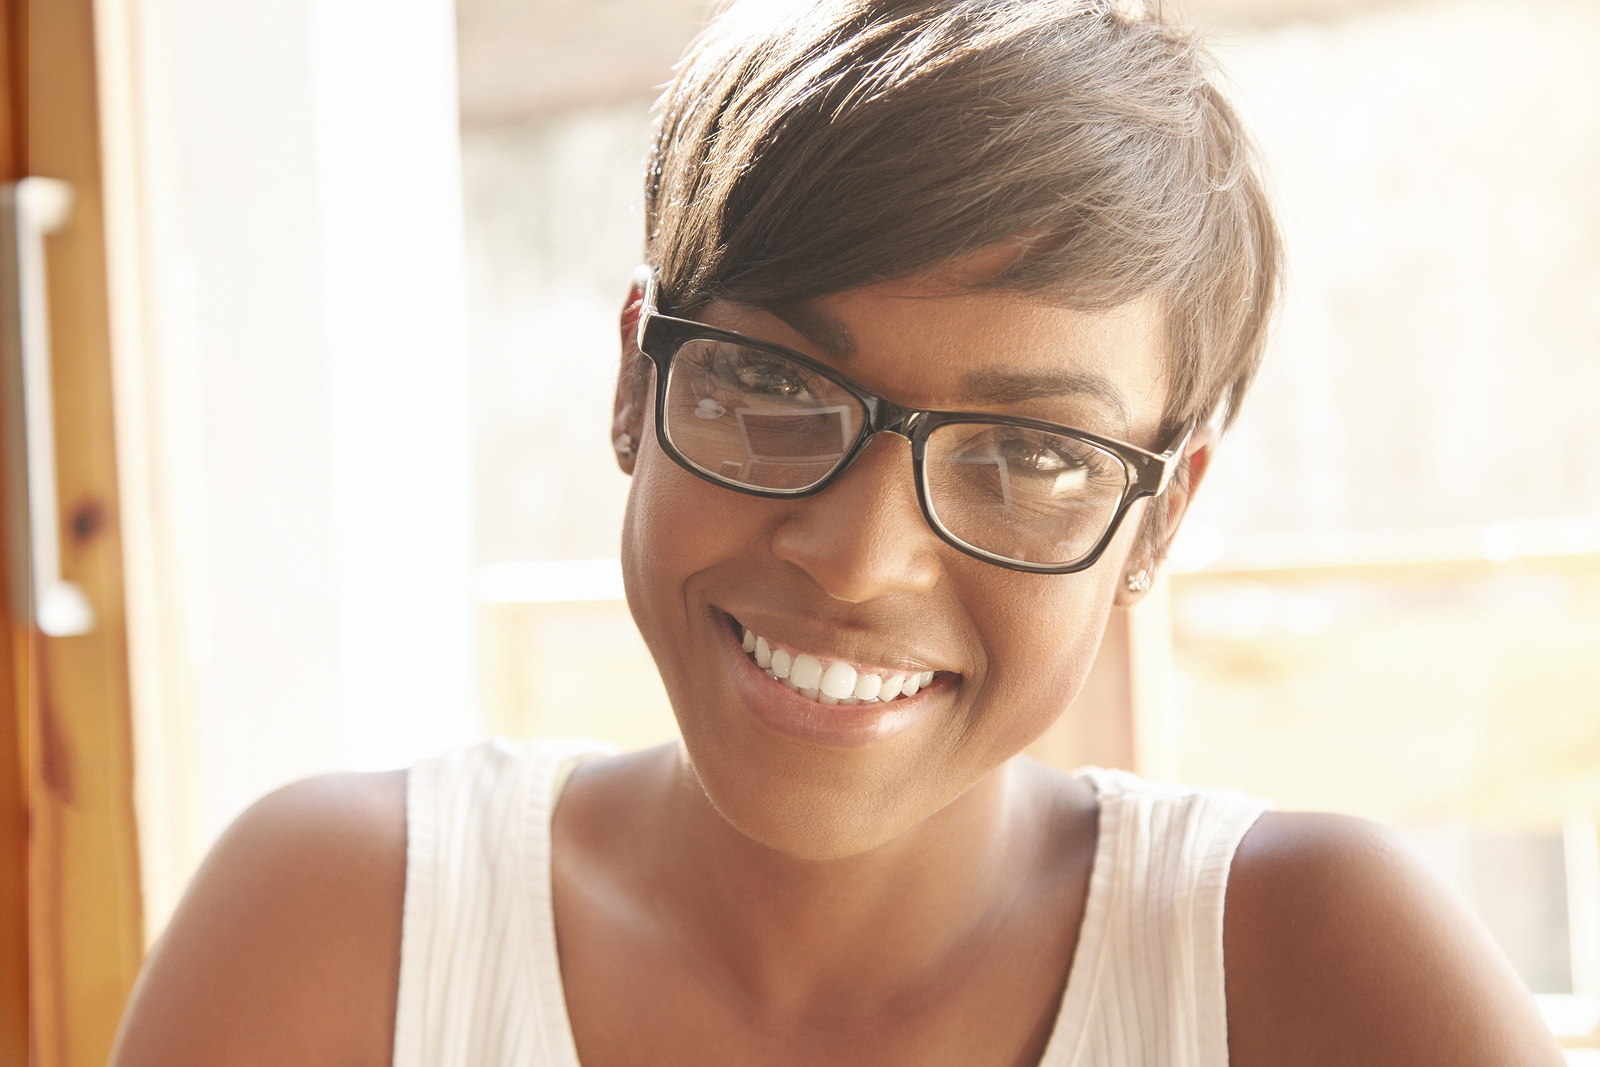 Want to Try a Pixie Cut? How to Get Your Customized Look!